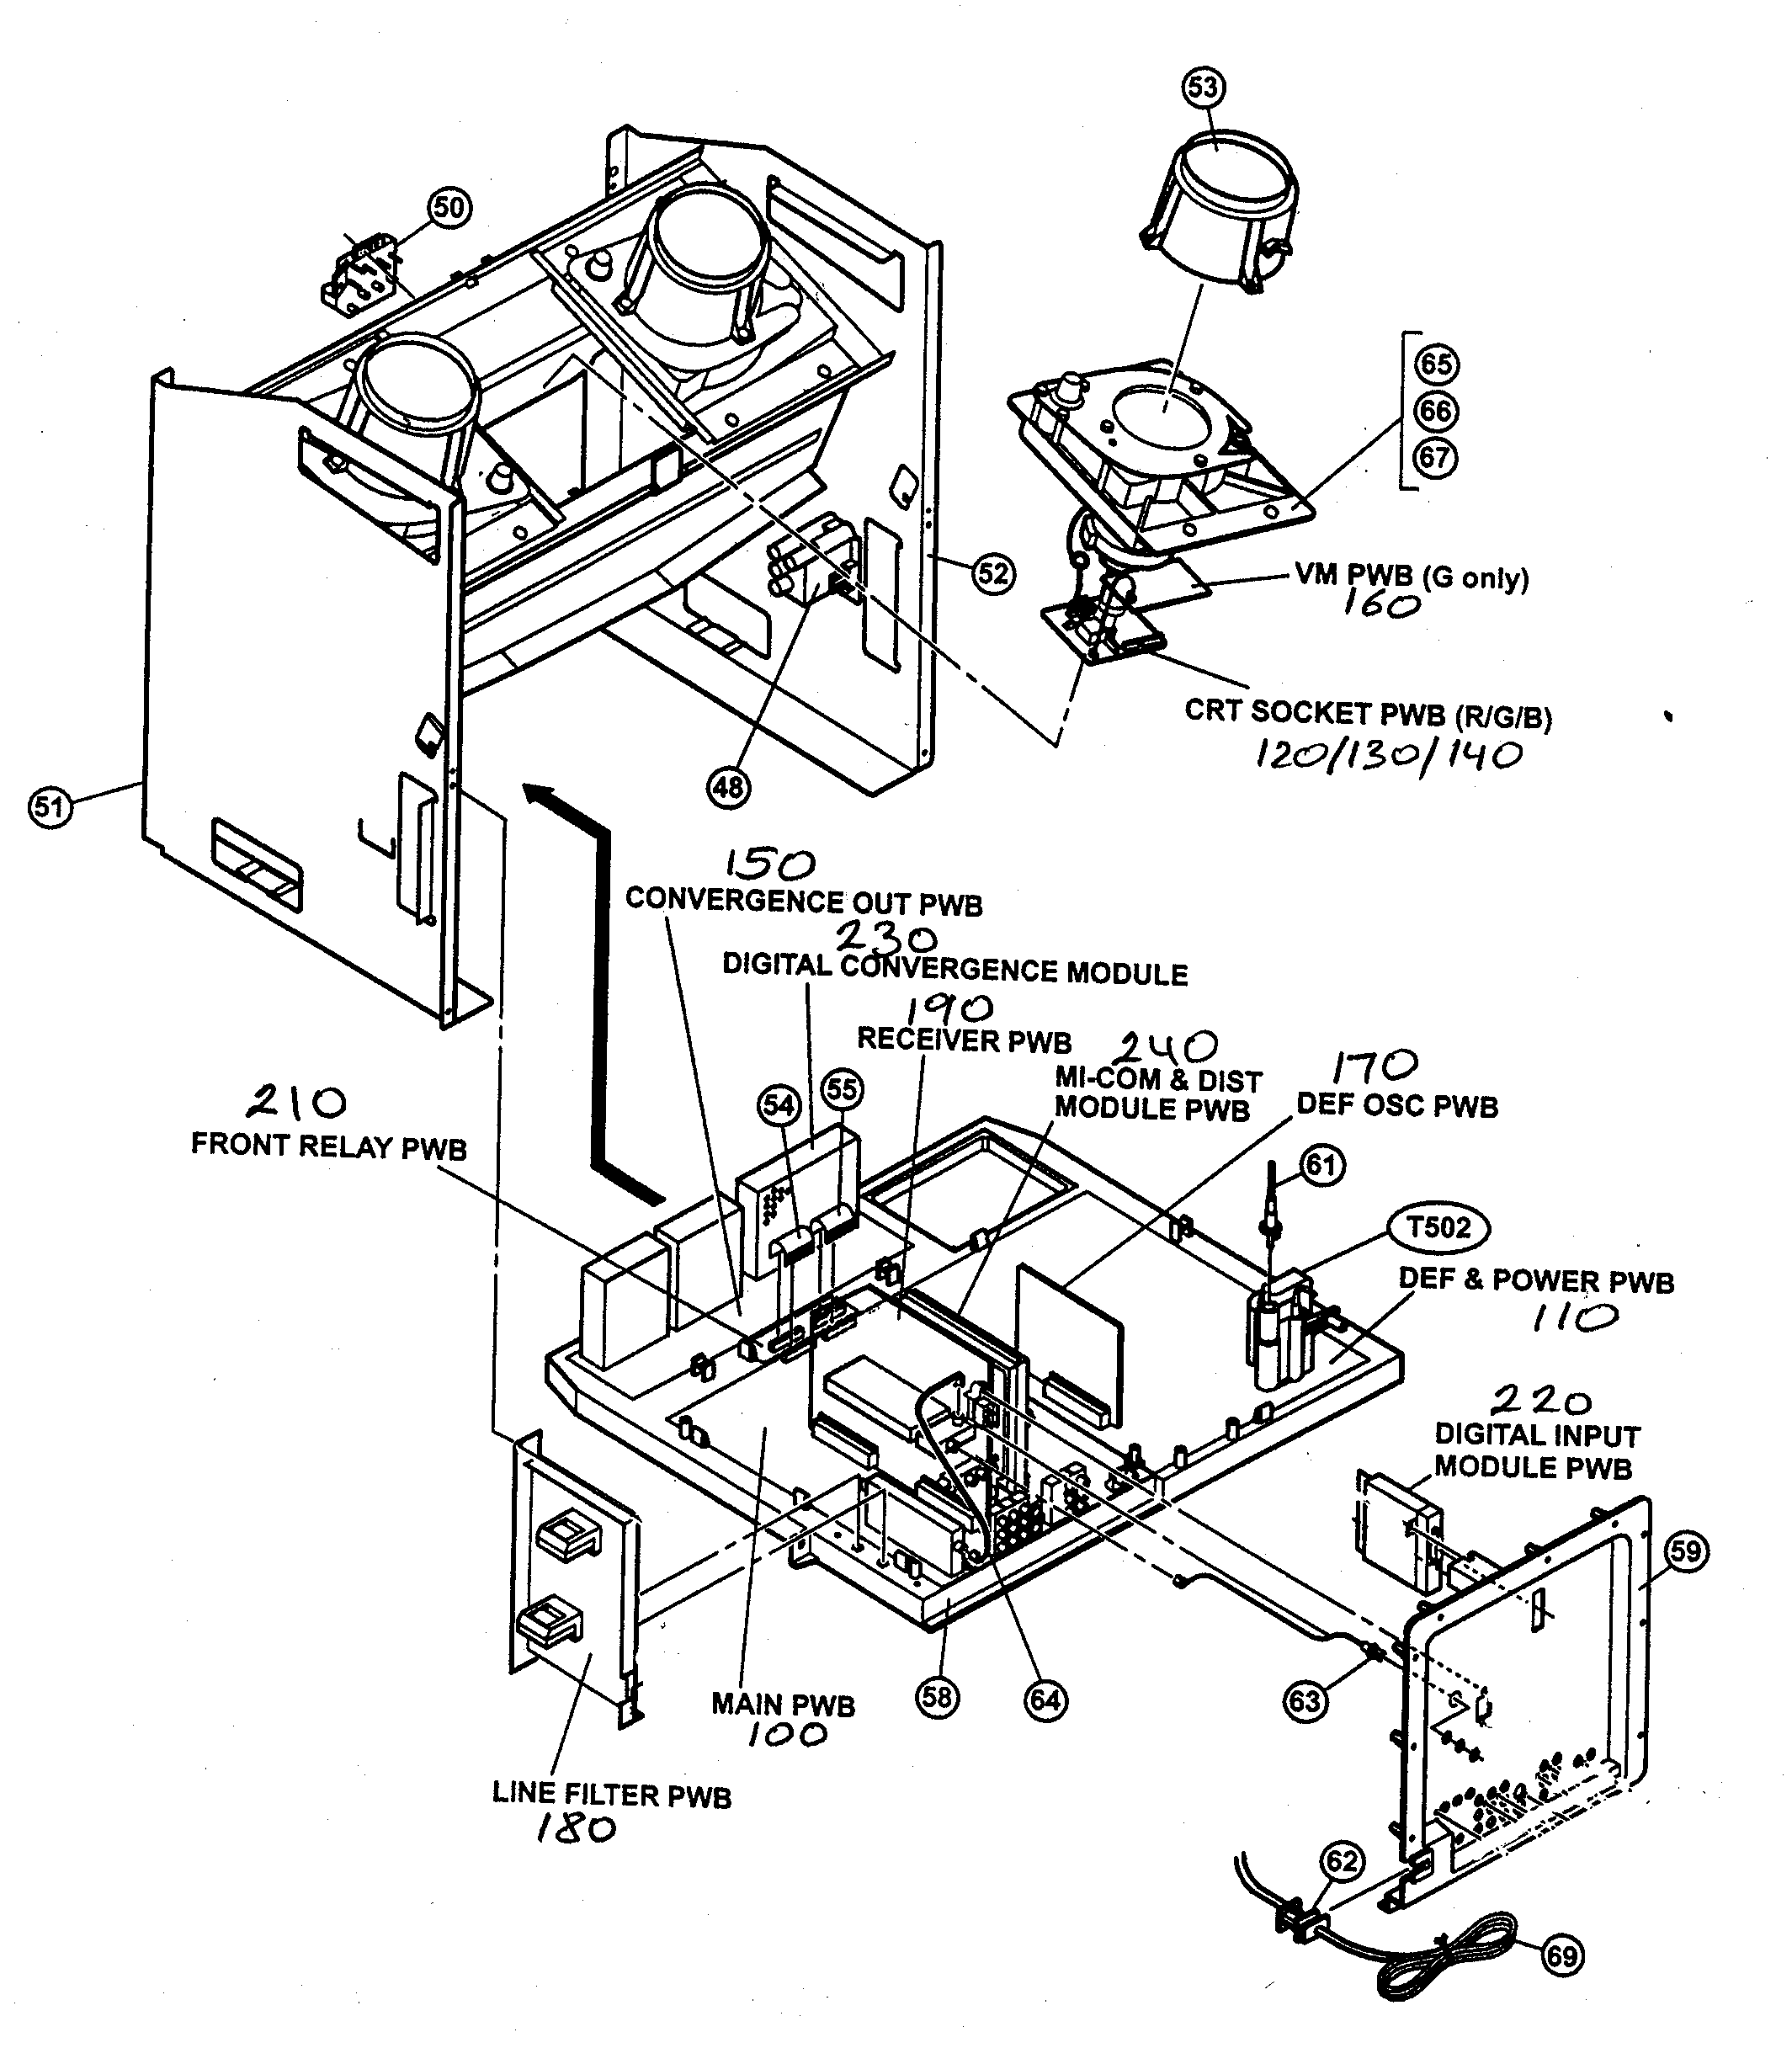 CABINET PARTS 2 Diagram & Parts List for Model AV48WP74